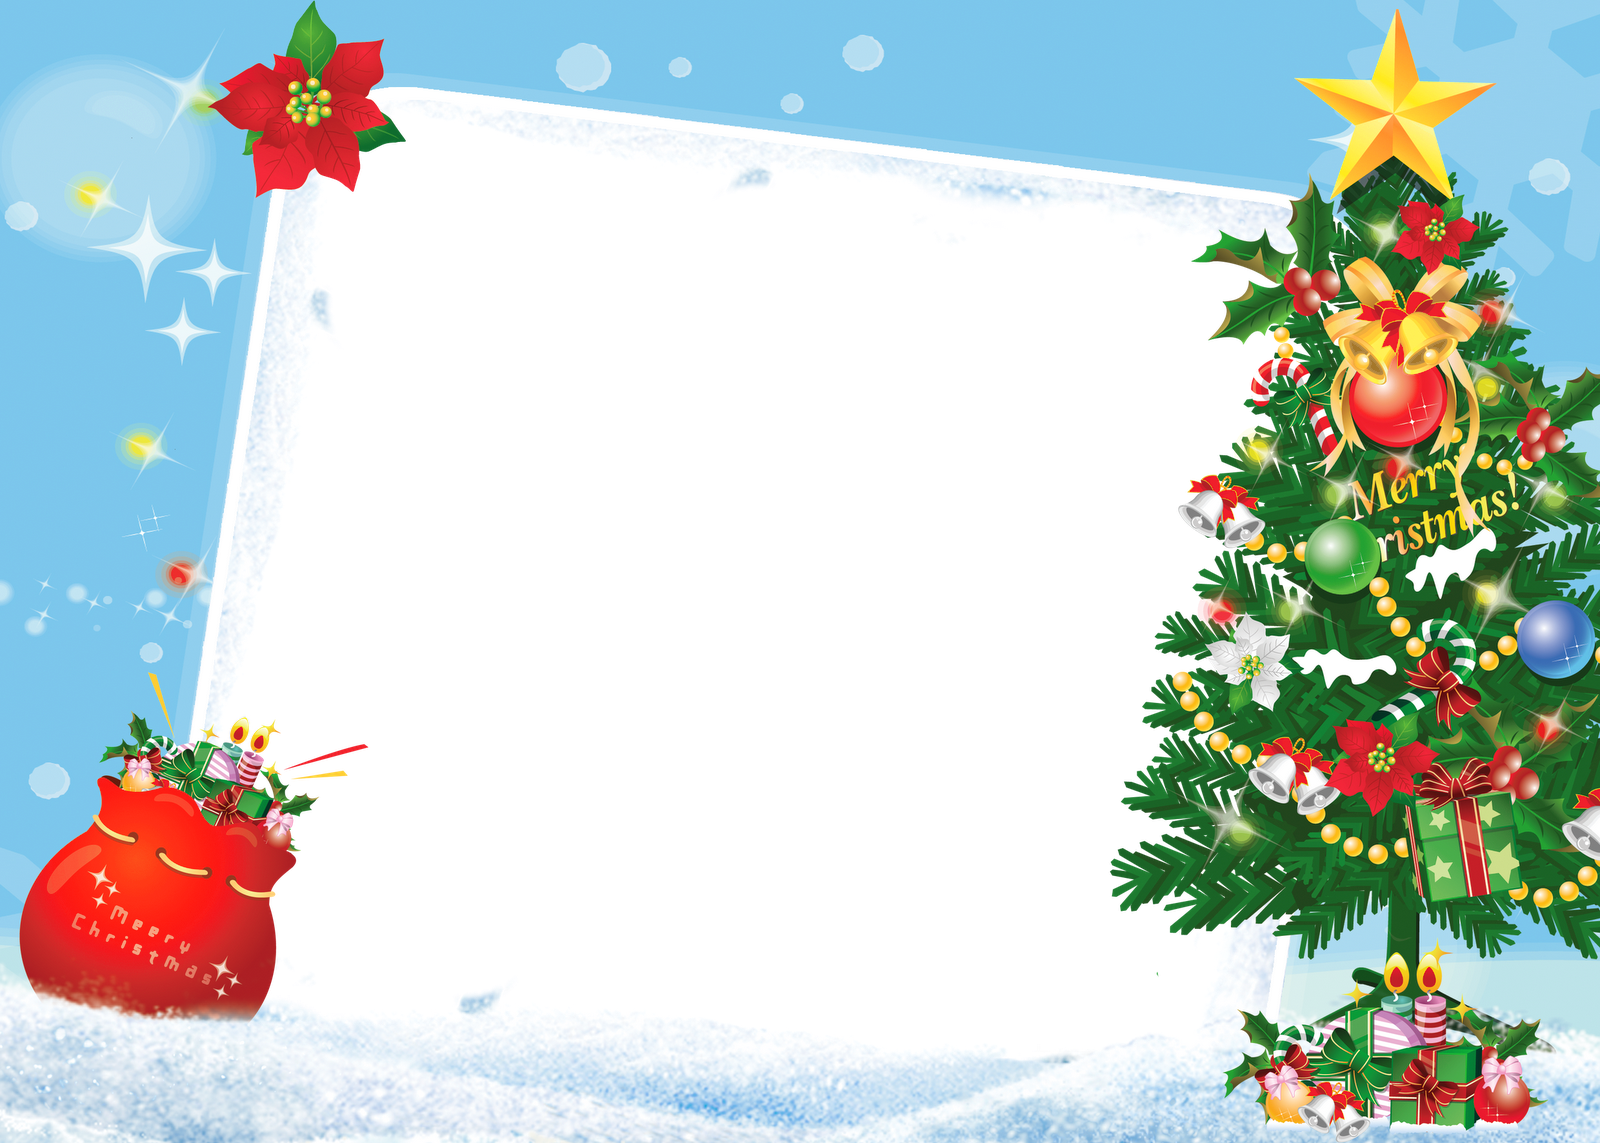 With tree gallery view. Merry christmas frame png